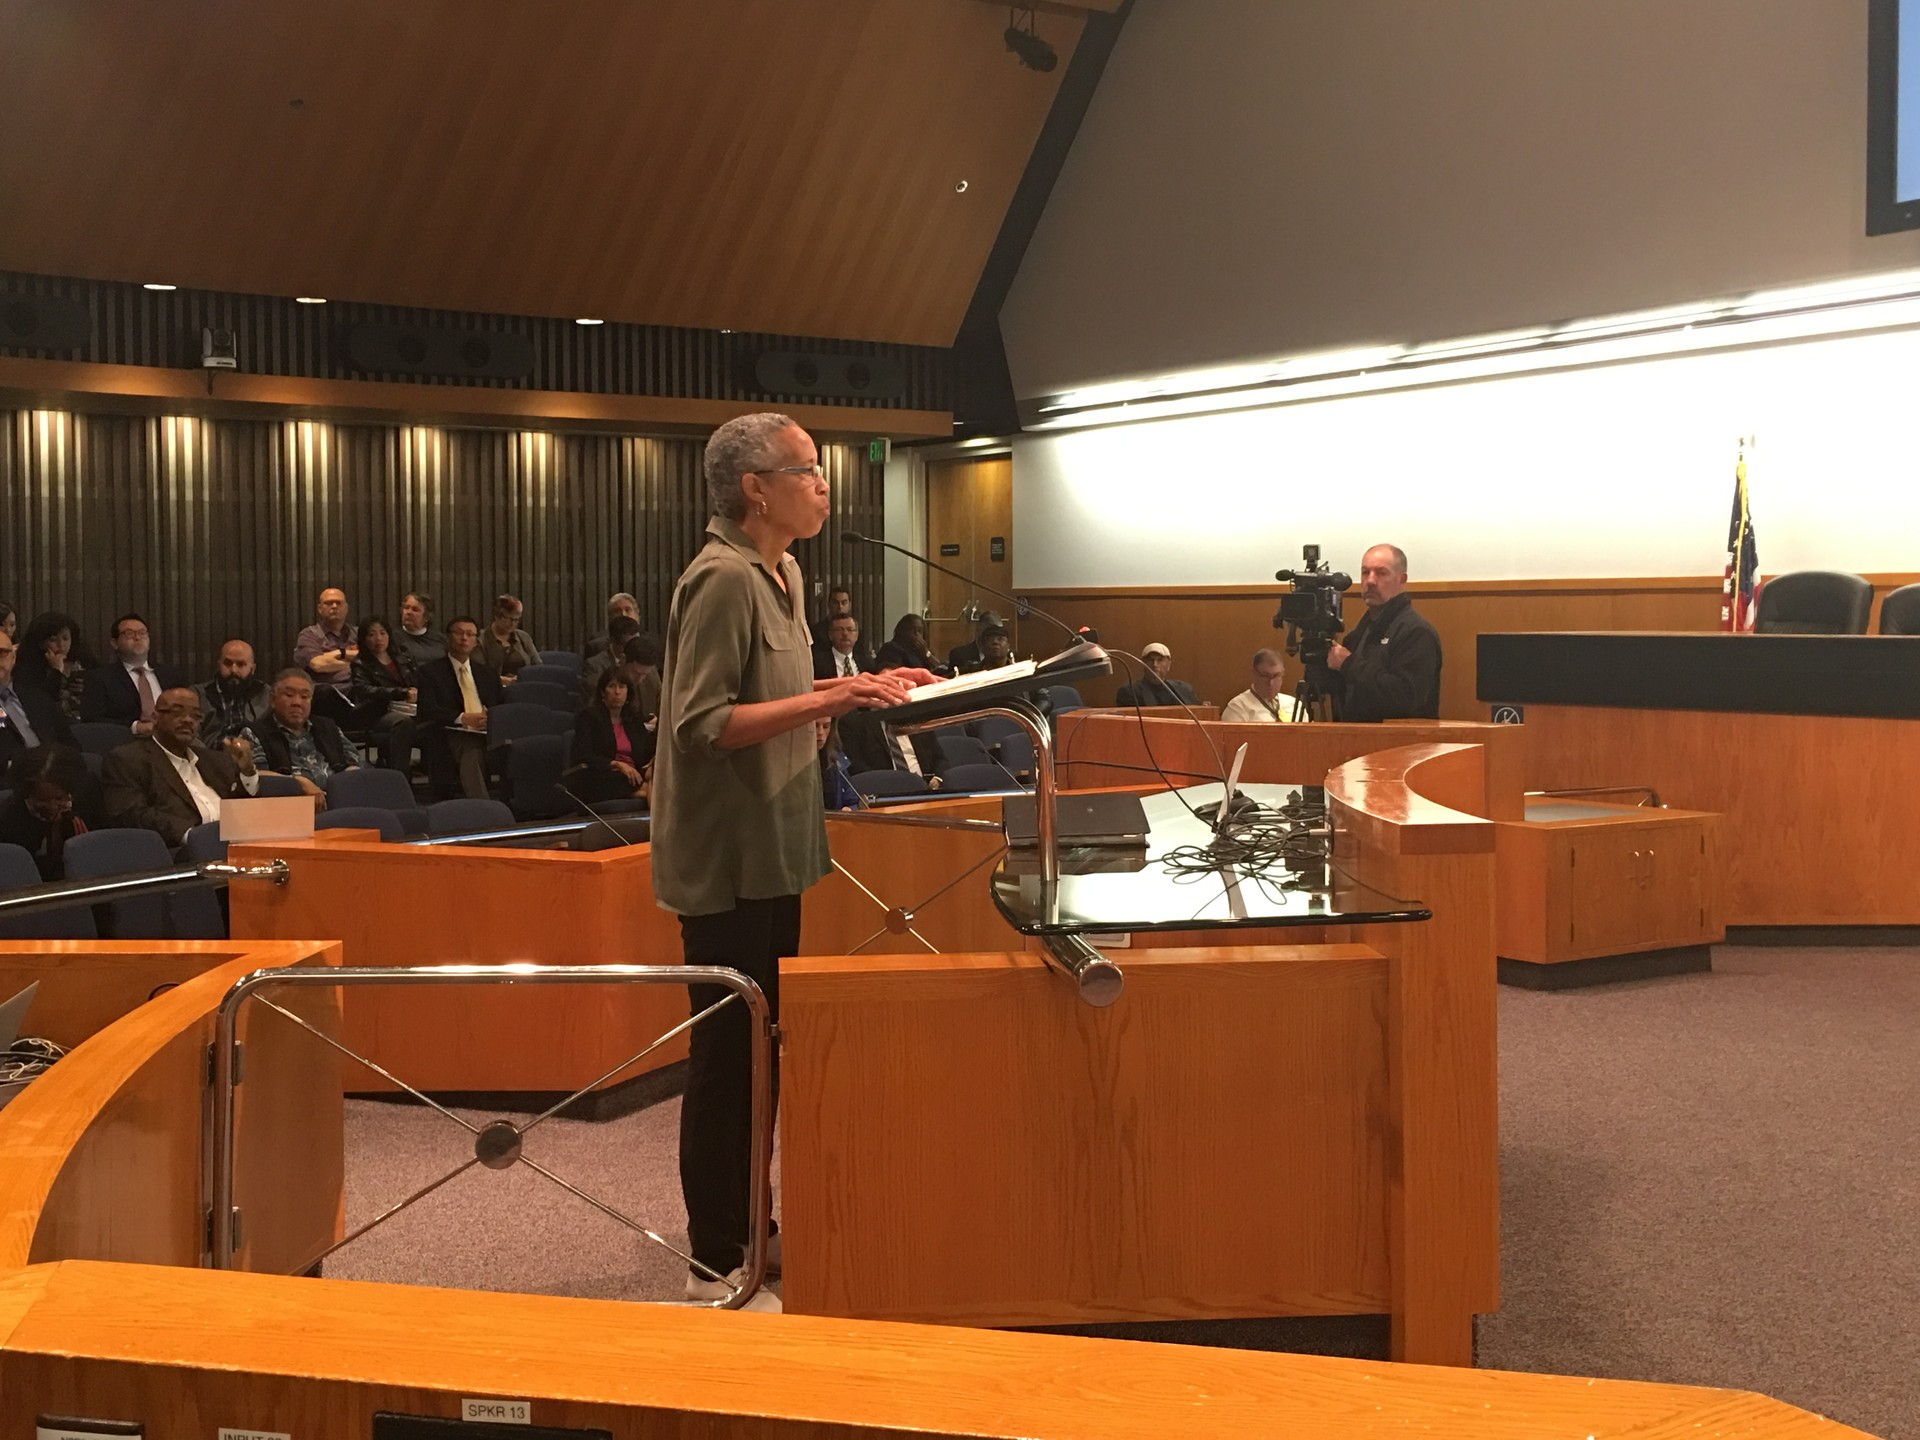 Blue Ribbon Commission chair LaDoris Cordell before the Santa Clara County Board of Supervisors.